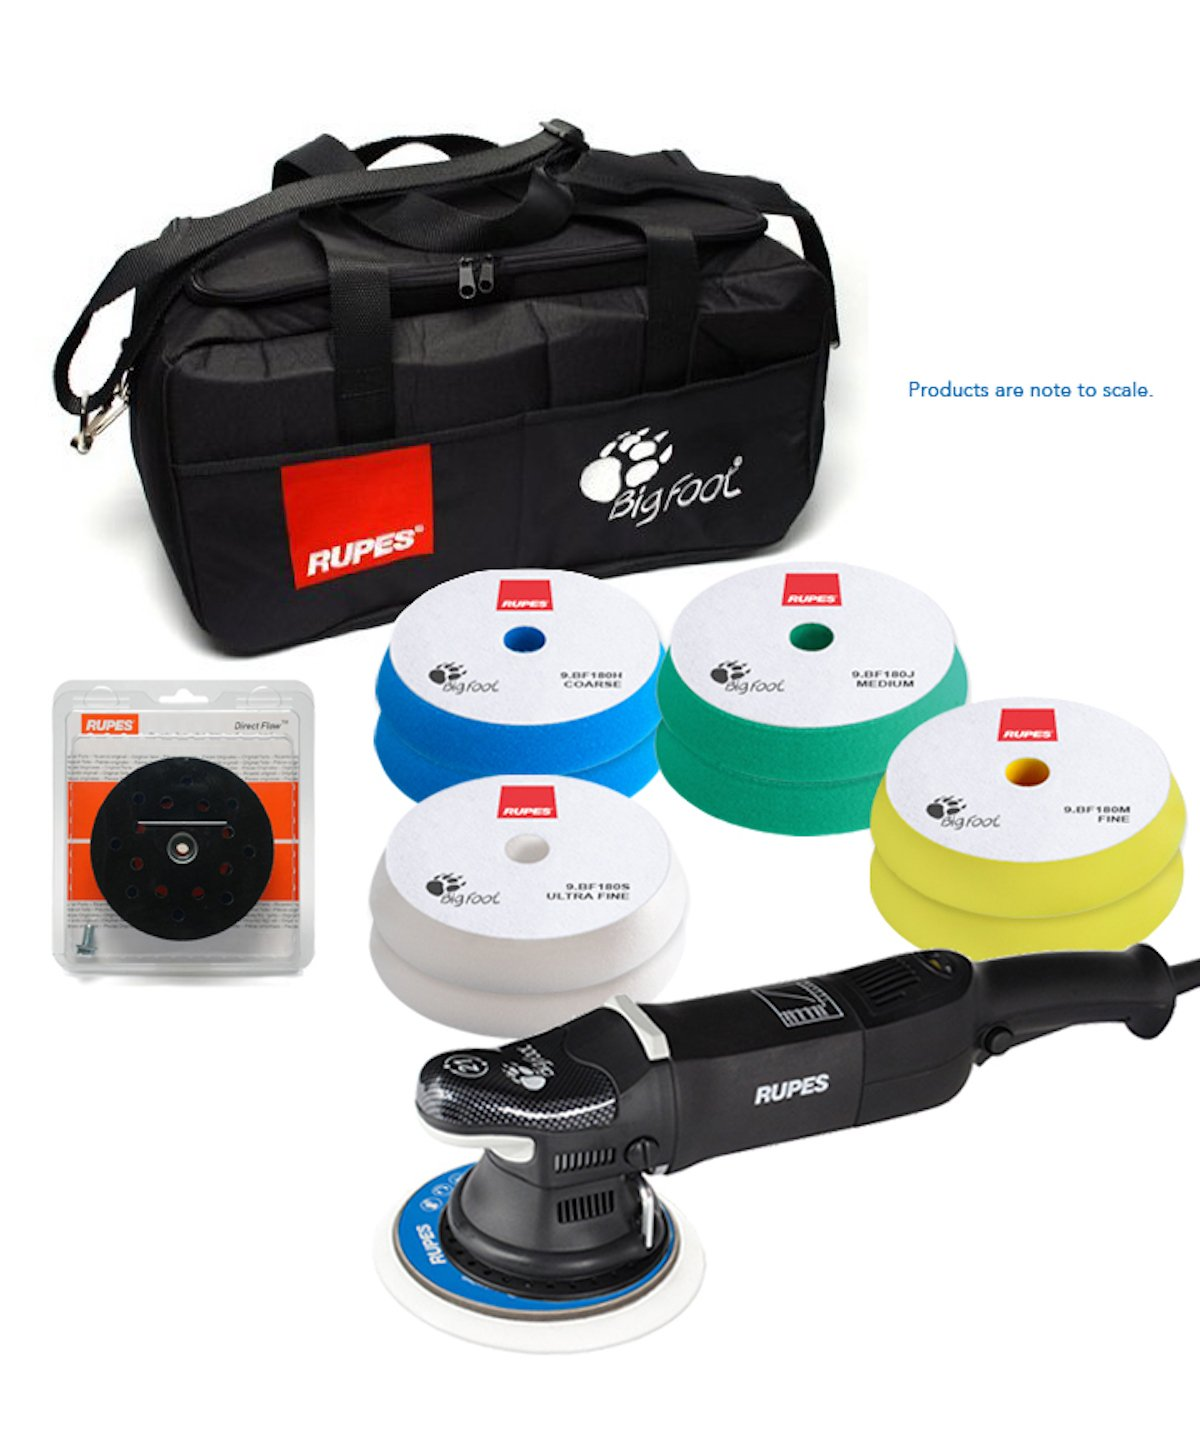 ESSENTIALS KIT Rupes LHR 21 Mark II Big Foot with 8 pads, bag, and 6 inch backing plate